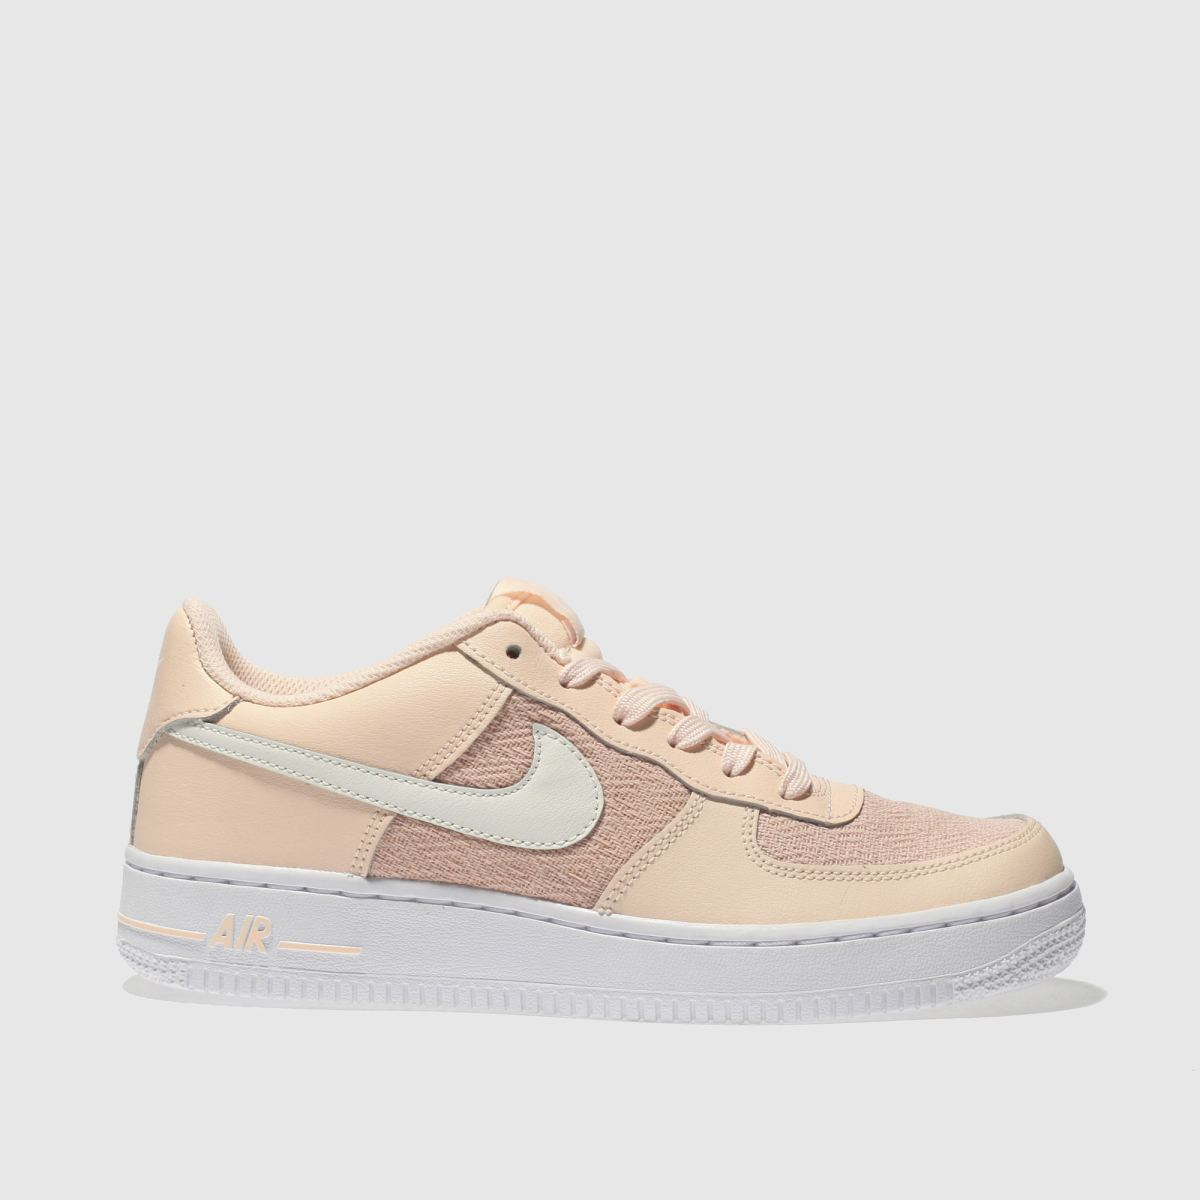 Nike Peach Air Force 1 Girls Youth Youth